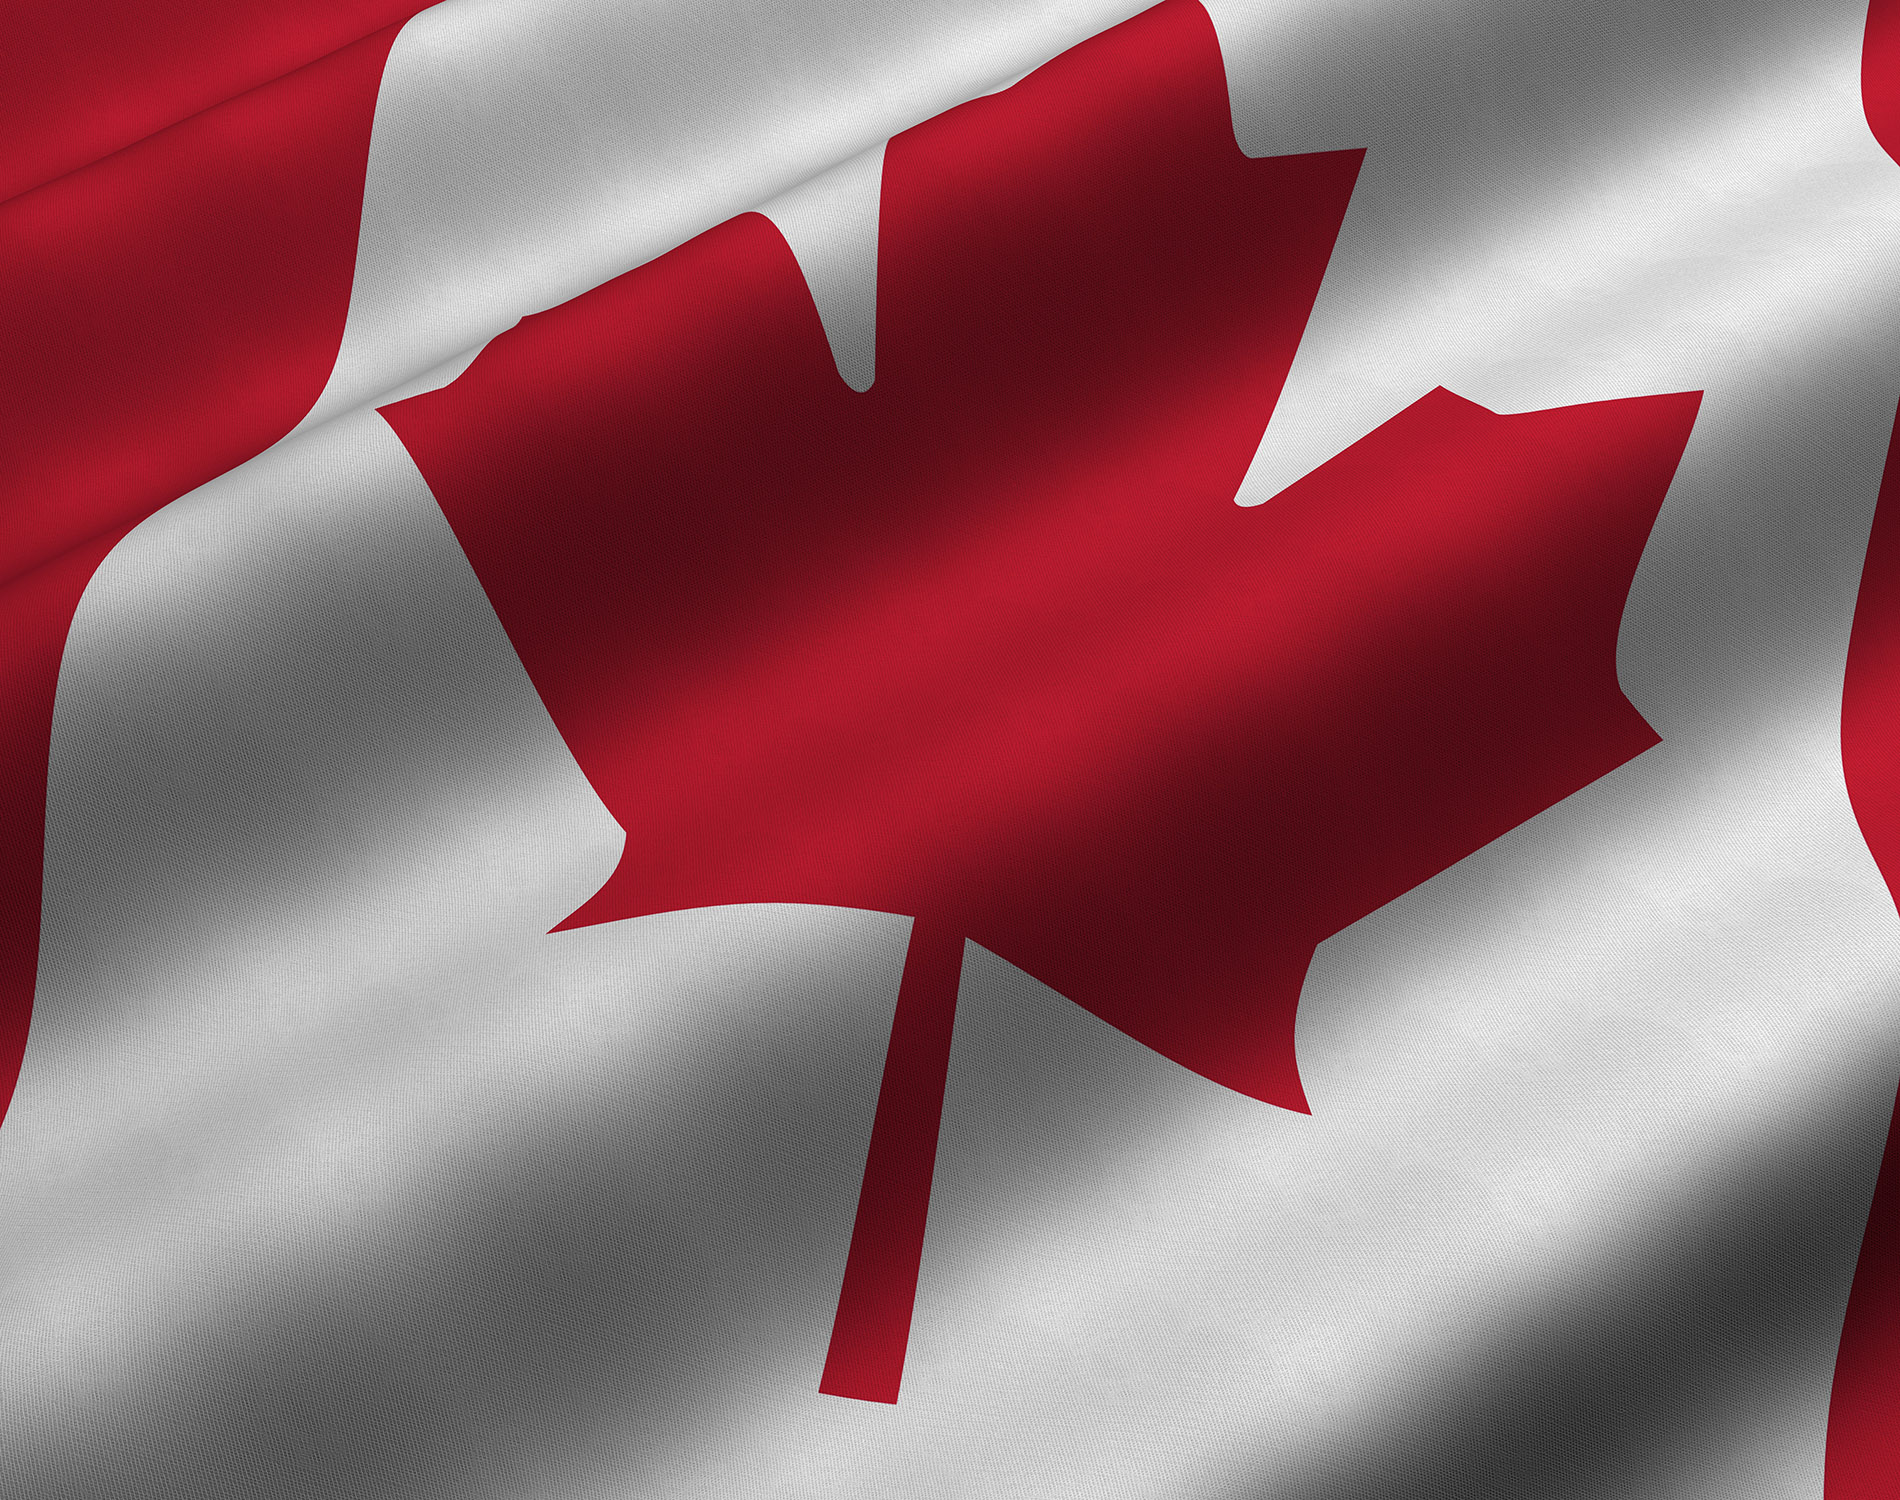 /-/media/images/website/background-images/regions/canada/canada-flag_2.ashx